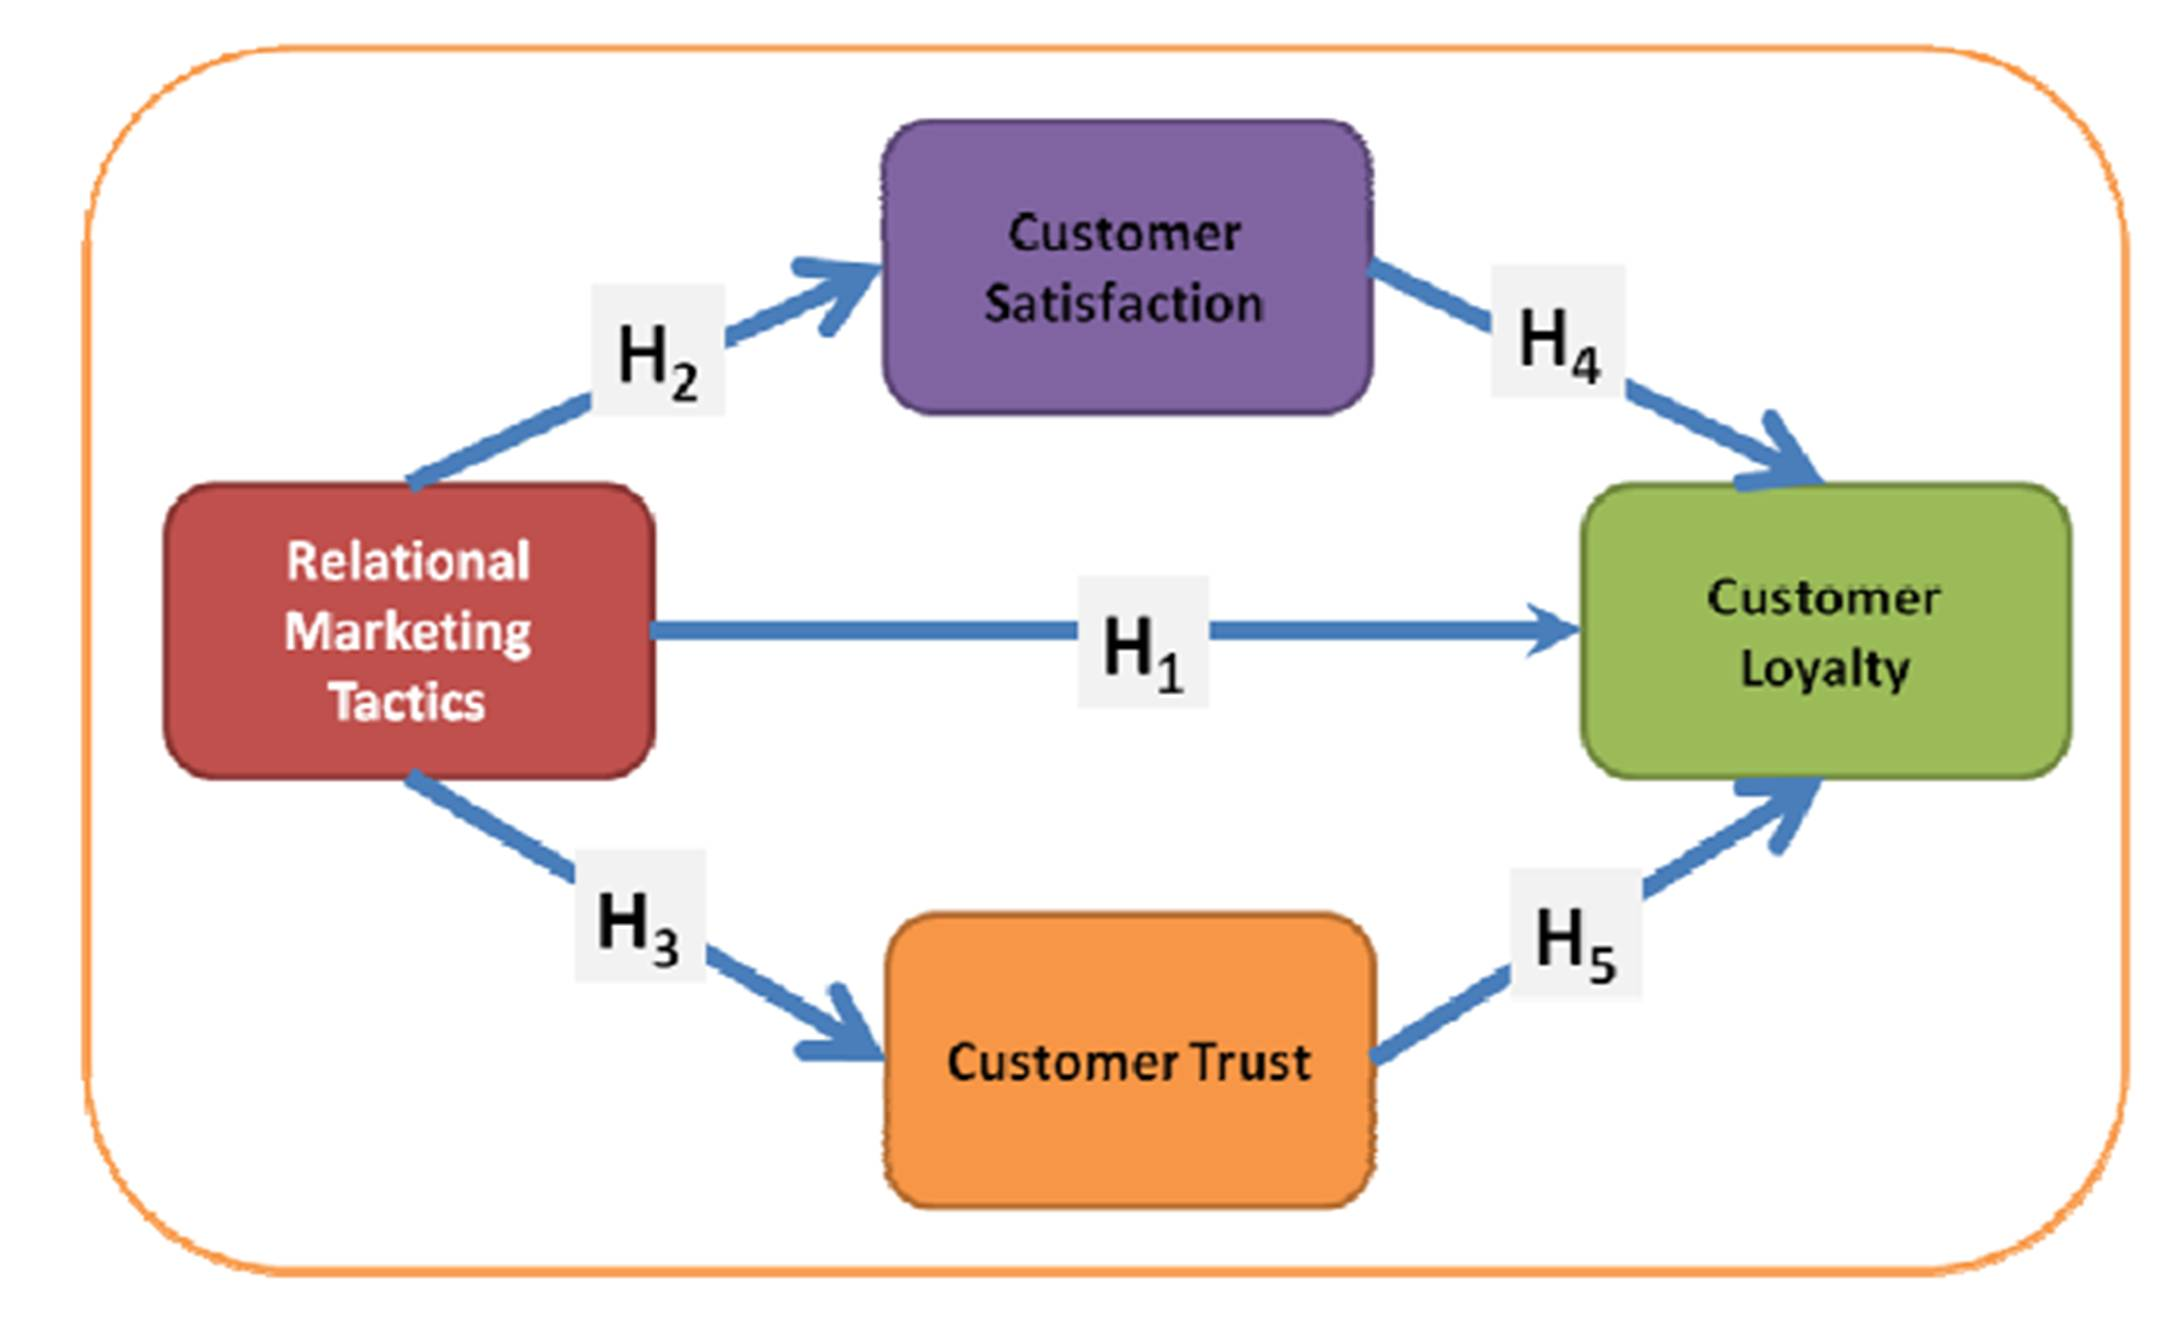 management thesis on customer perception Customer perception explained: why it is important, positive & negative impact factors, how to measure and to manage it, with examples.